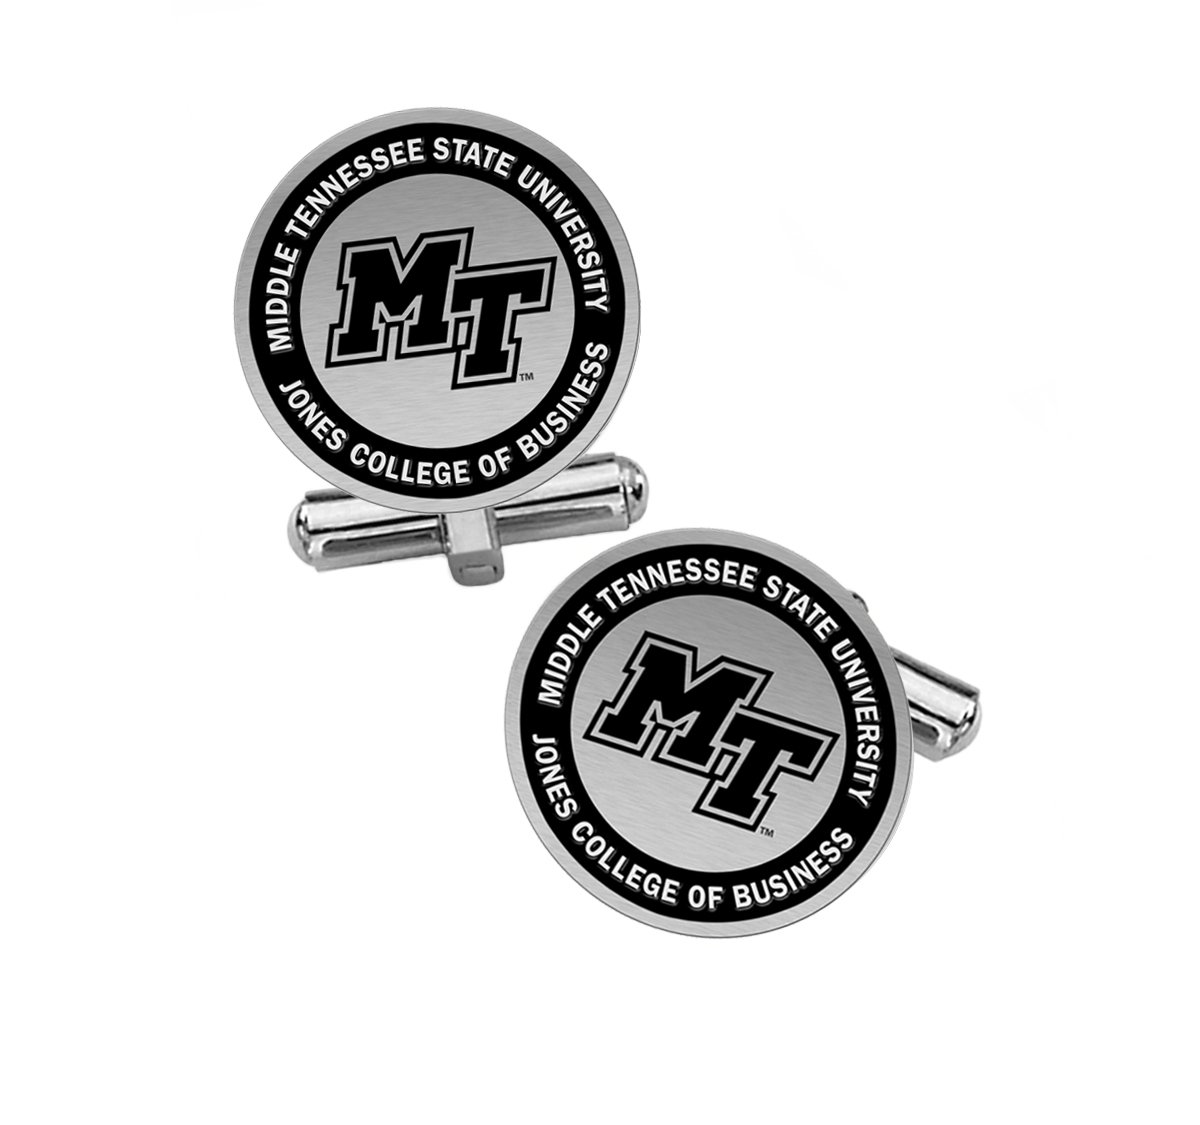 Jones College of Business Cufflinks   Middle Tennessee State University